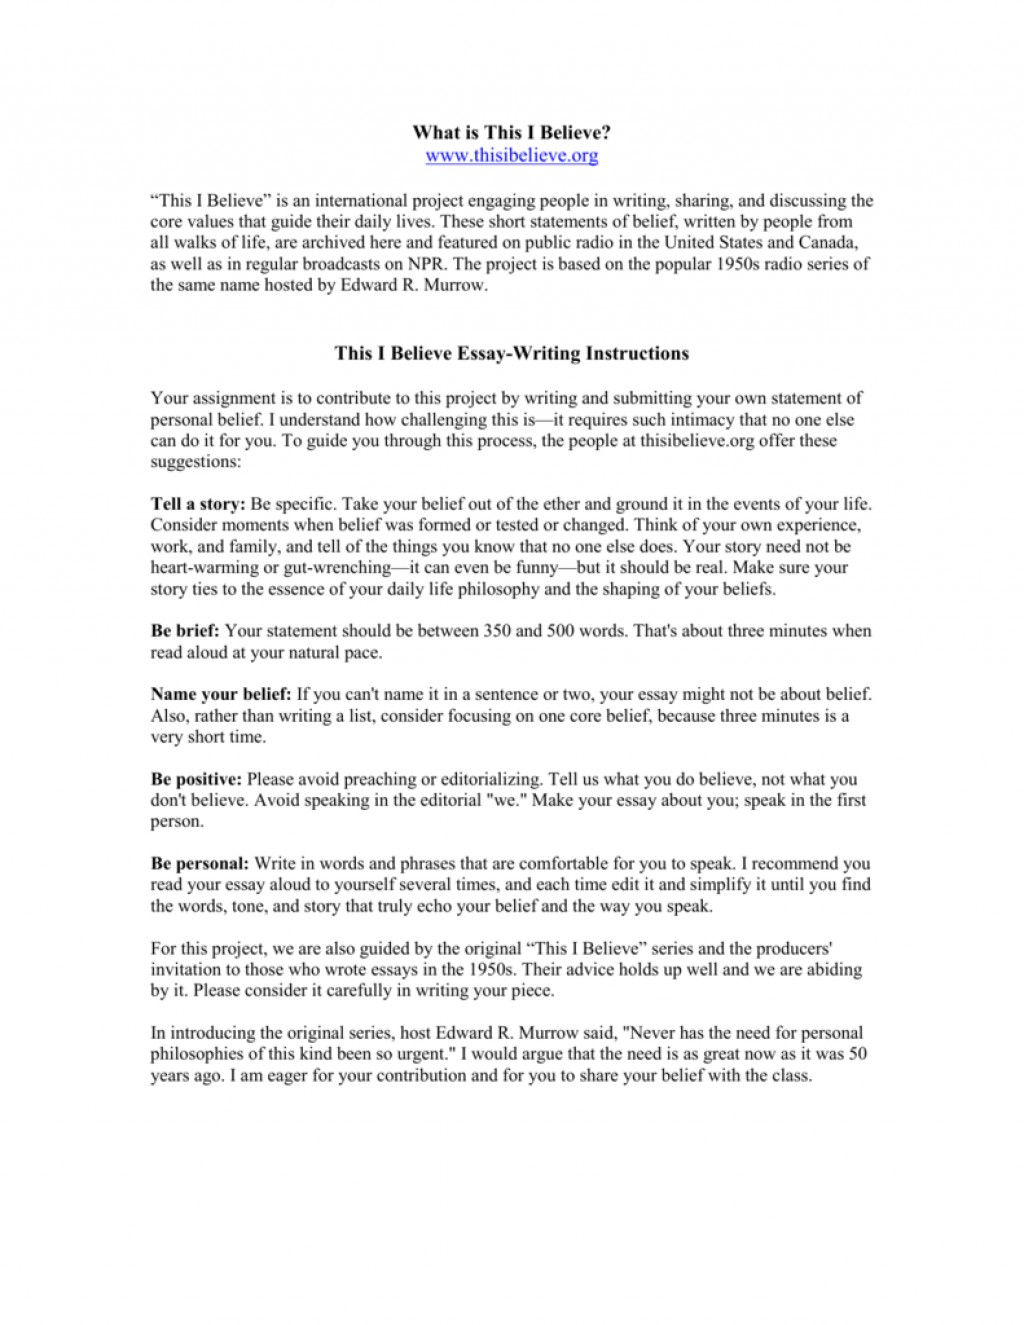 009 Essay Example How To Write This I Believe 008807226 1 Fantastic A What On Things Large